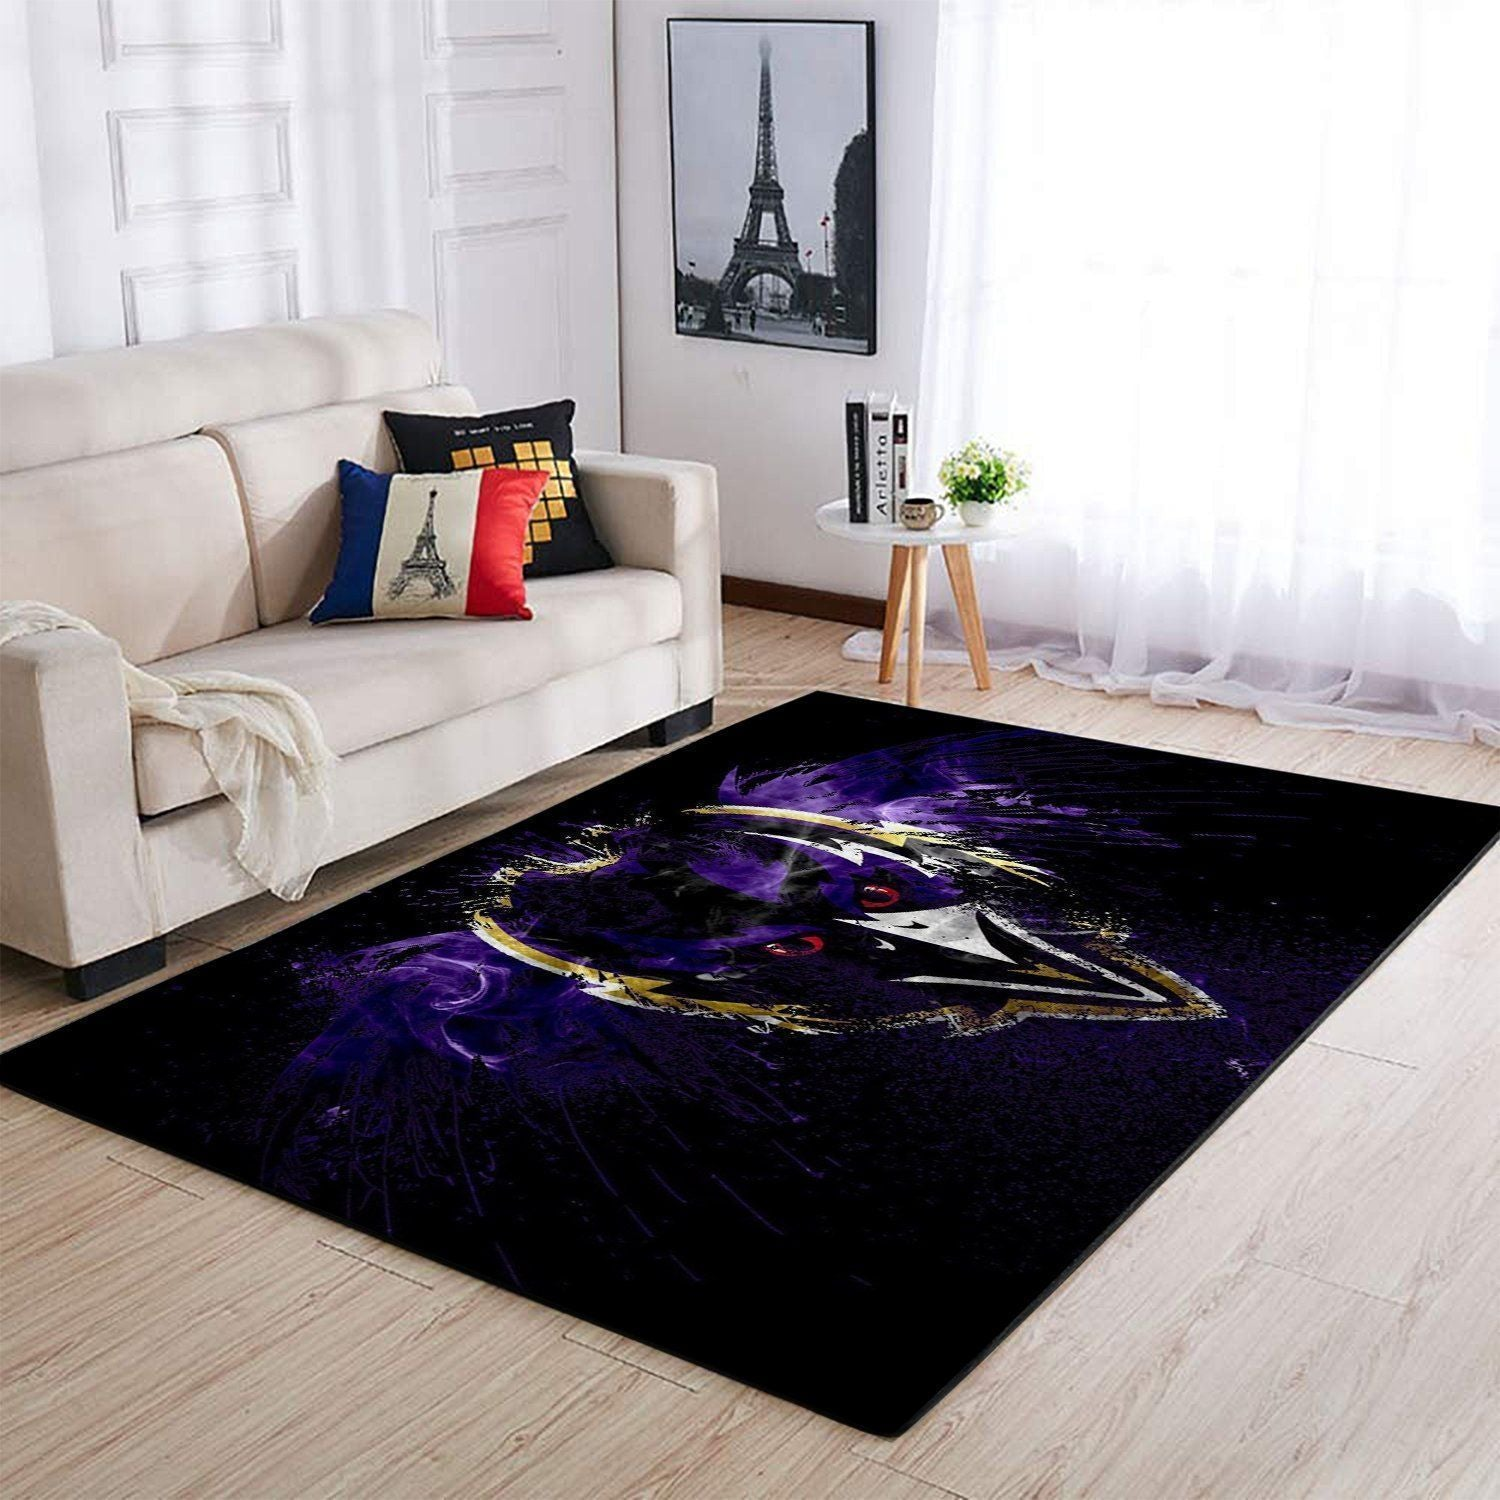 Baltimore Ravens Area Rug, NFL Football Team Logo Carpet, Living Room Rugs Floor Decor 191007